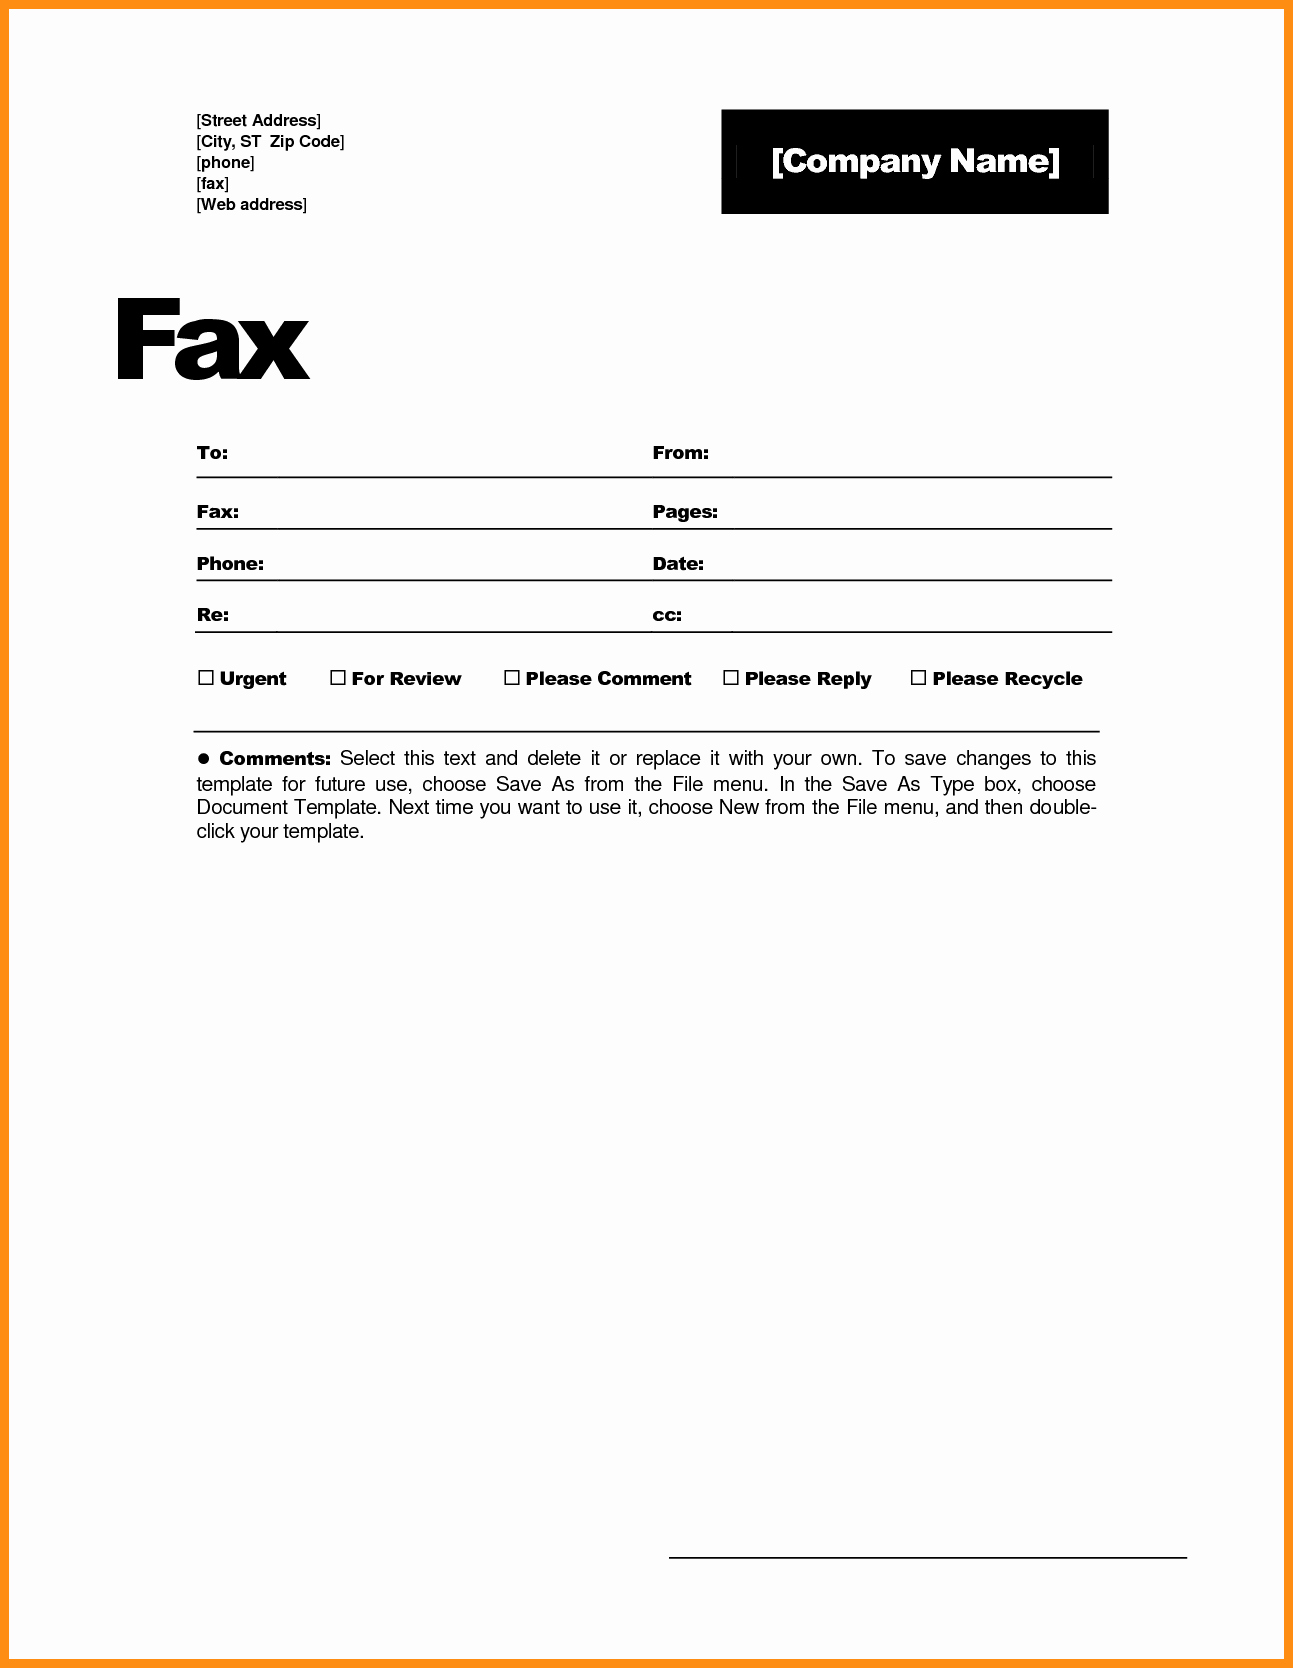 Sample Fax Cover Sheet Word Unique 6 Free Fax Cover Sheet Template Word